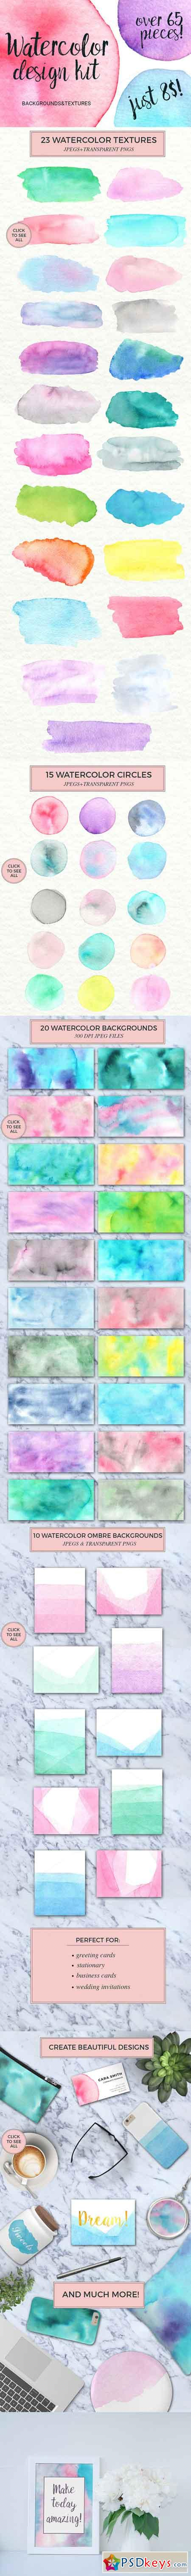 Watercolor design kit 705715